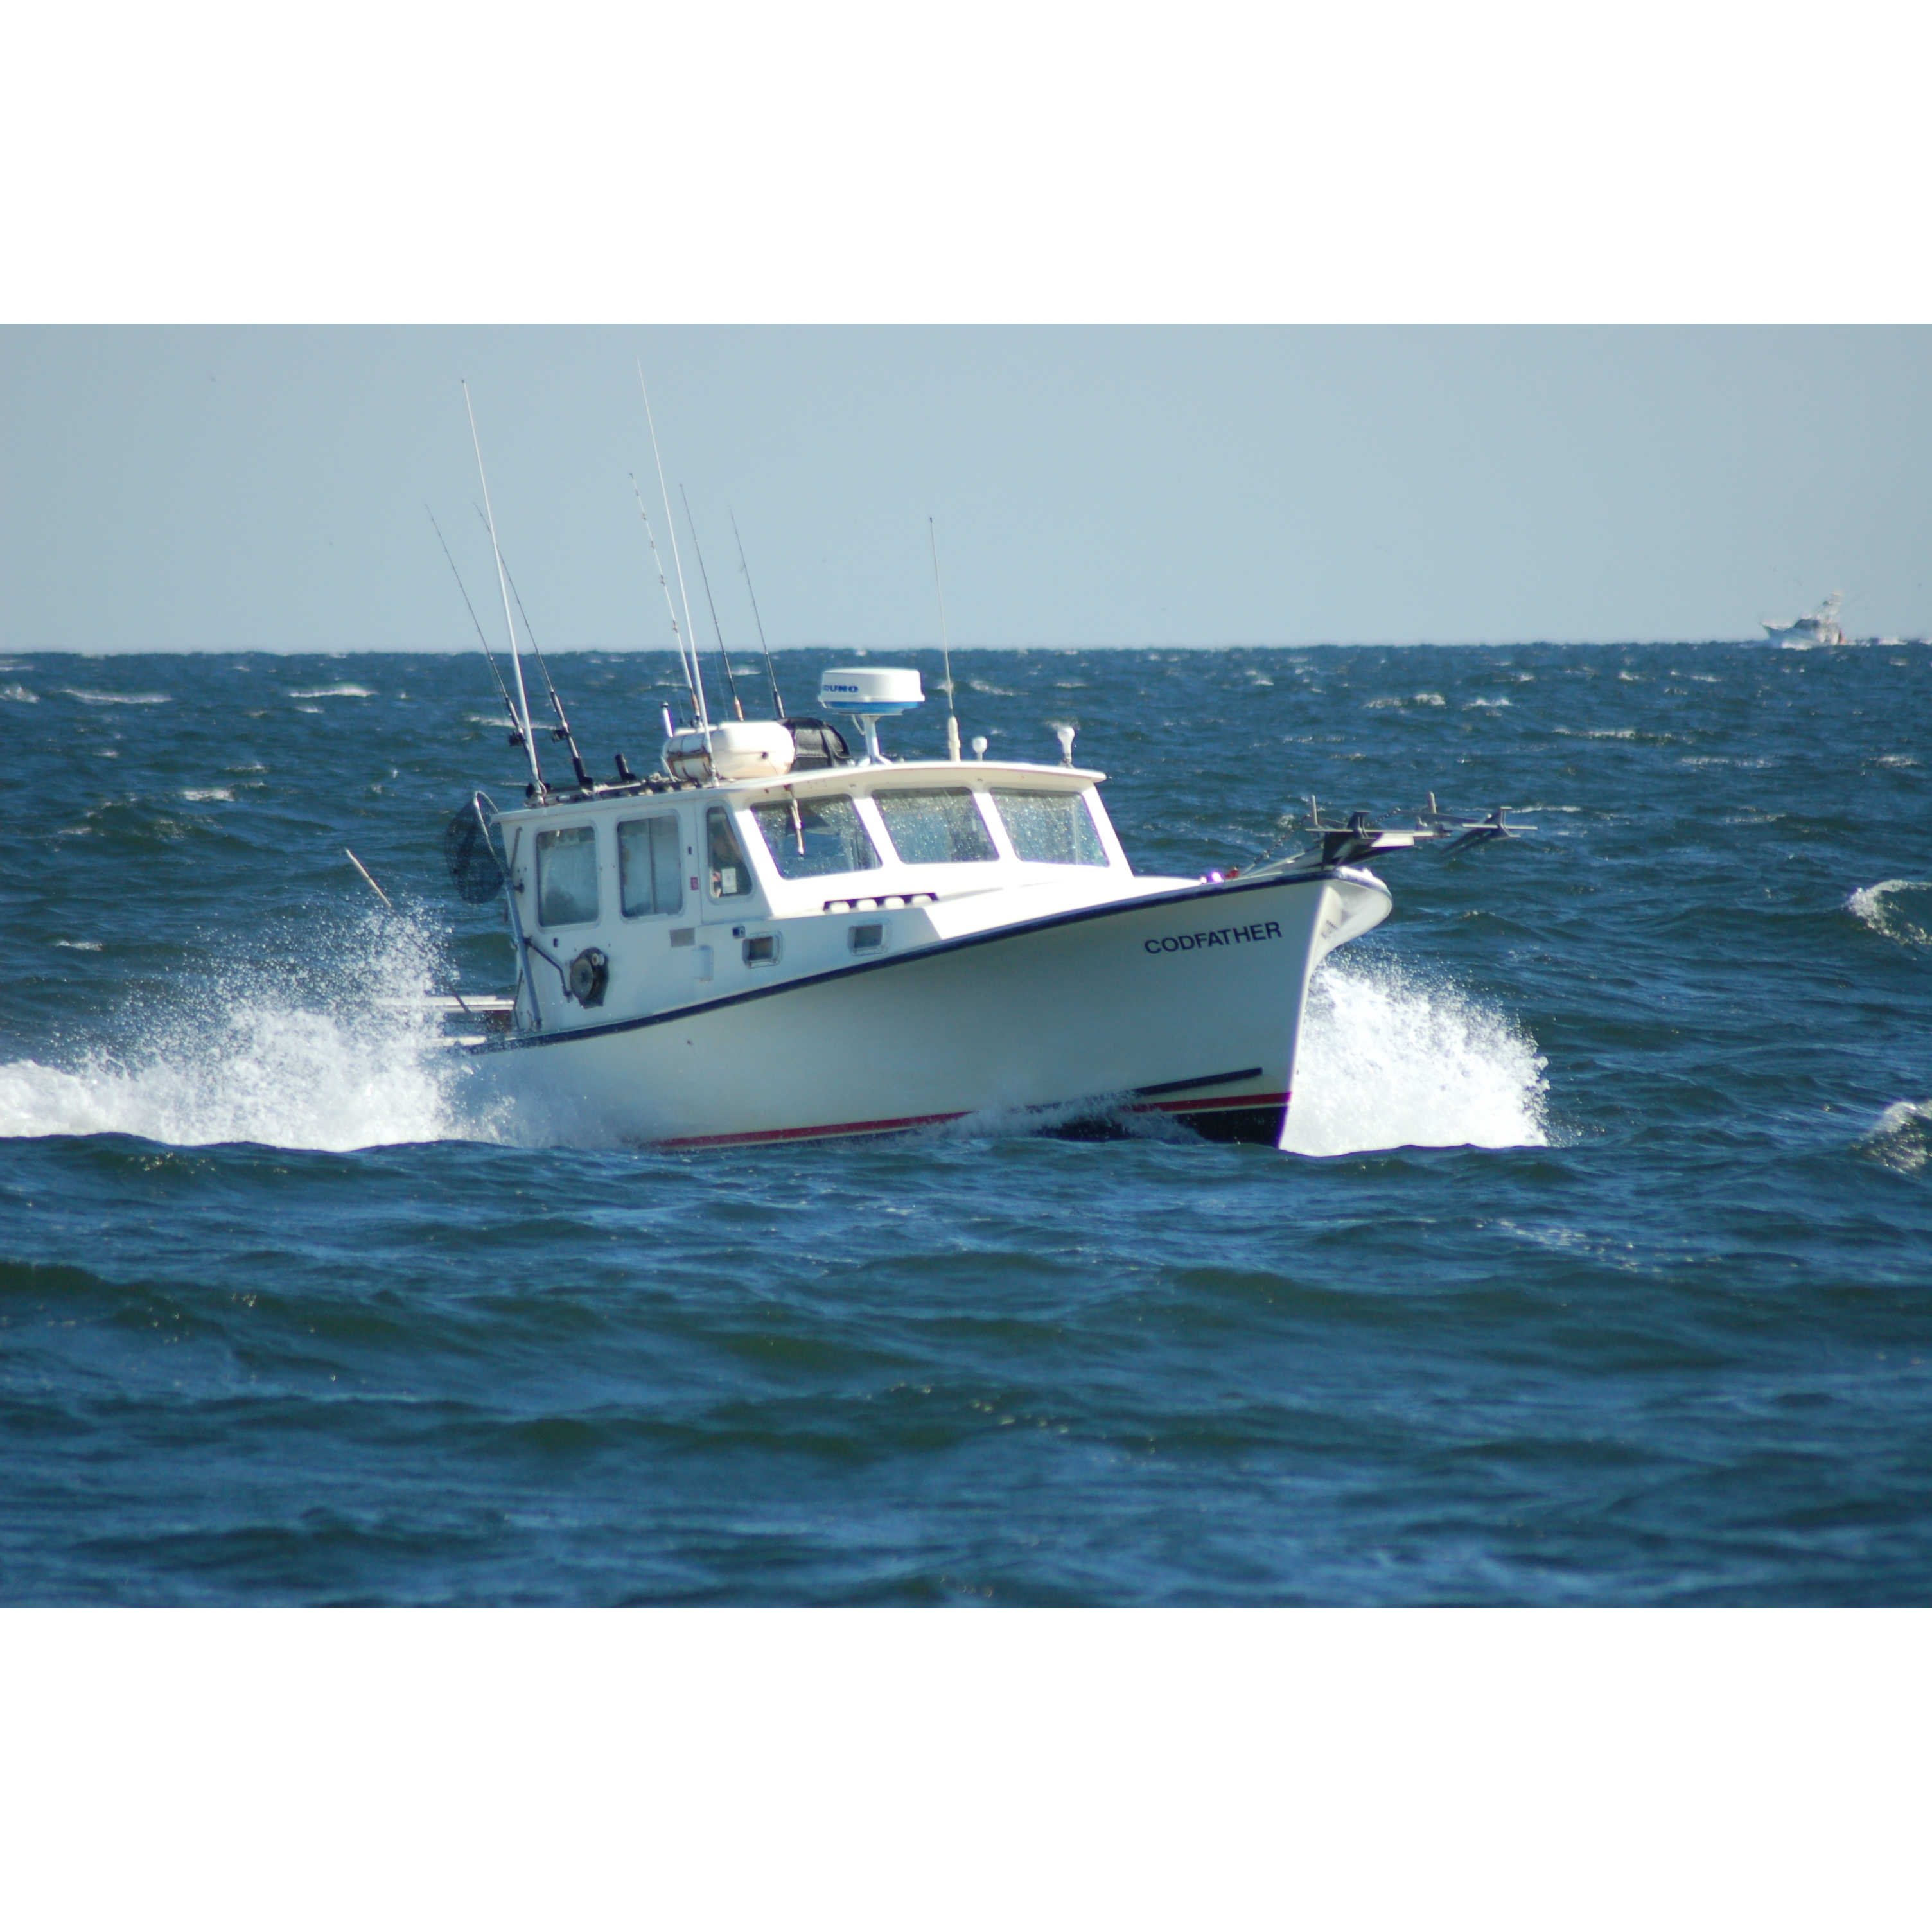 Codfather fishing charters coupons near me in freeport for Fishing area near me